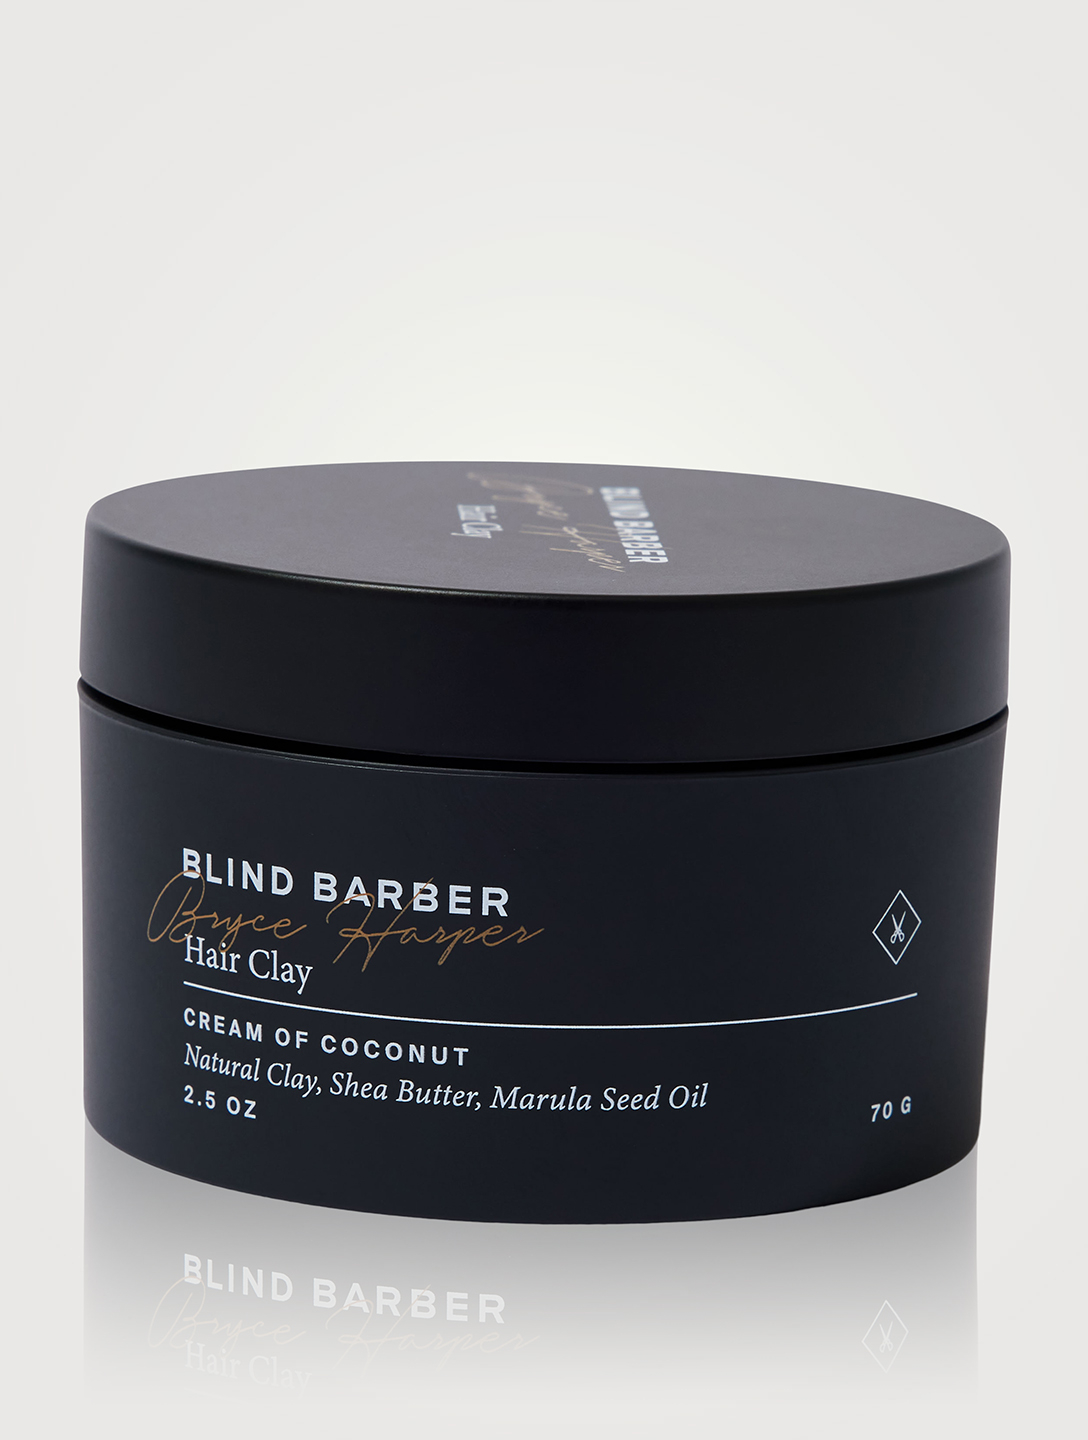 BLIND BARBER Bryce Harper Hair Clay Beauty